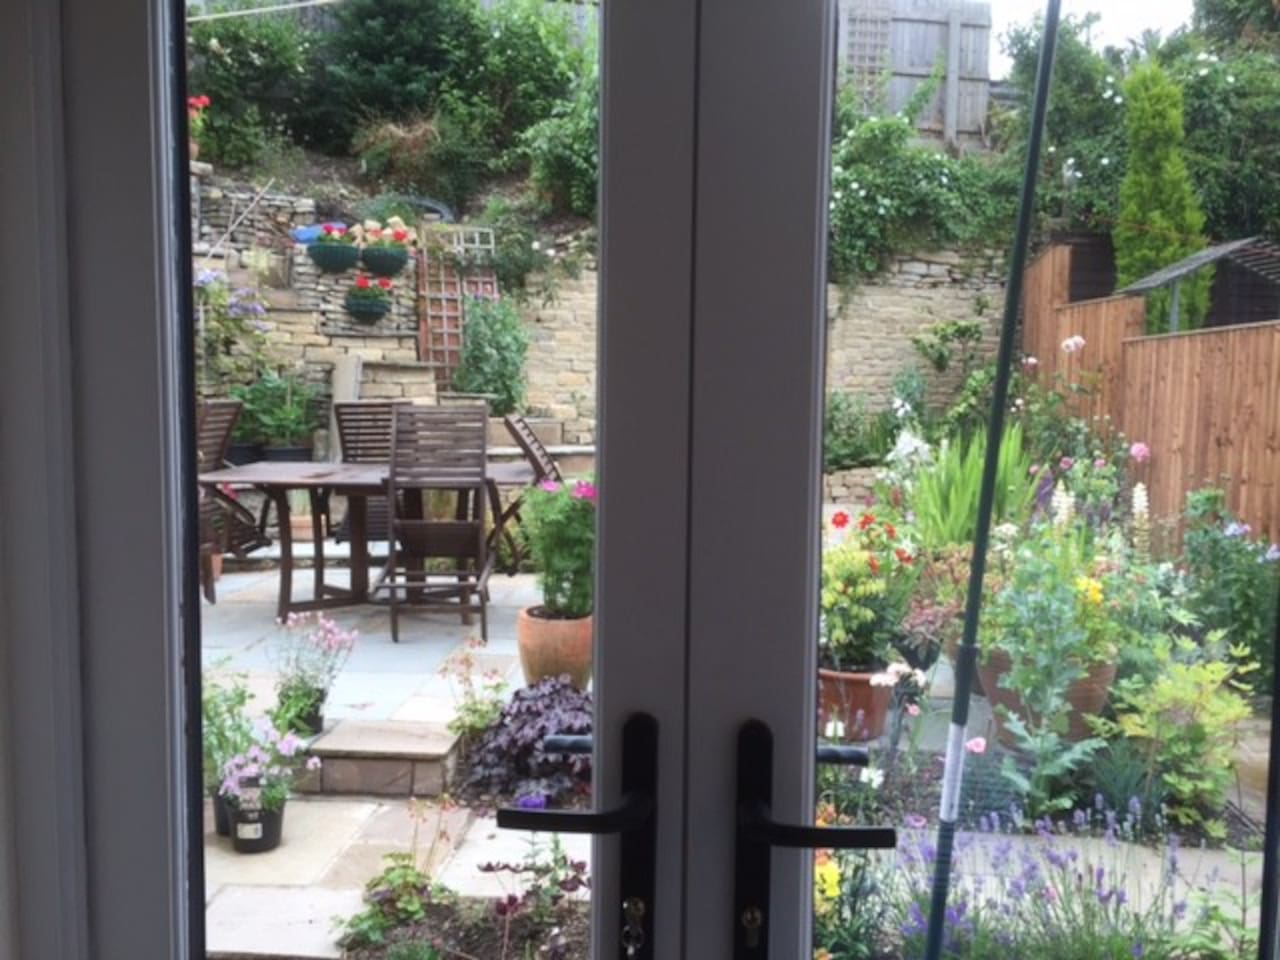 French windows into courtyard garden in which guests are welcome.